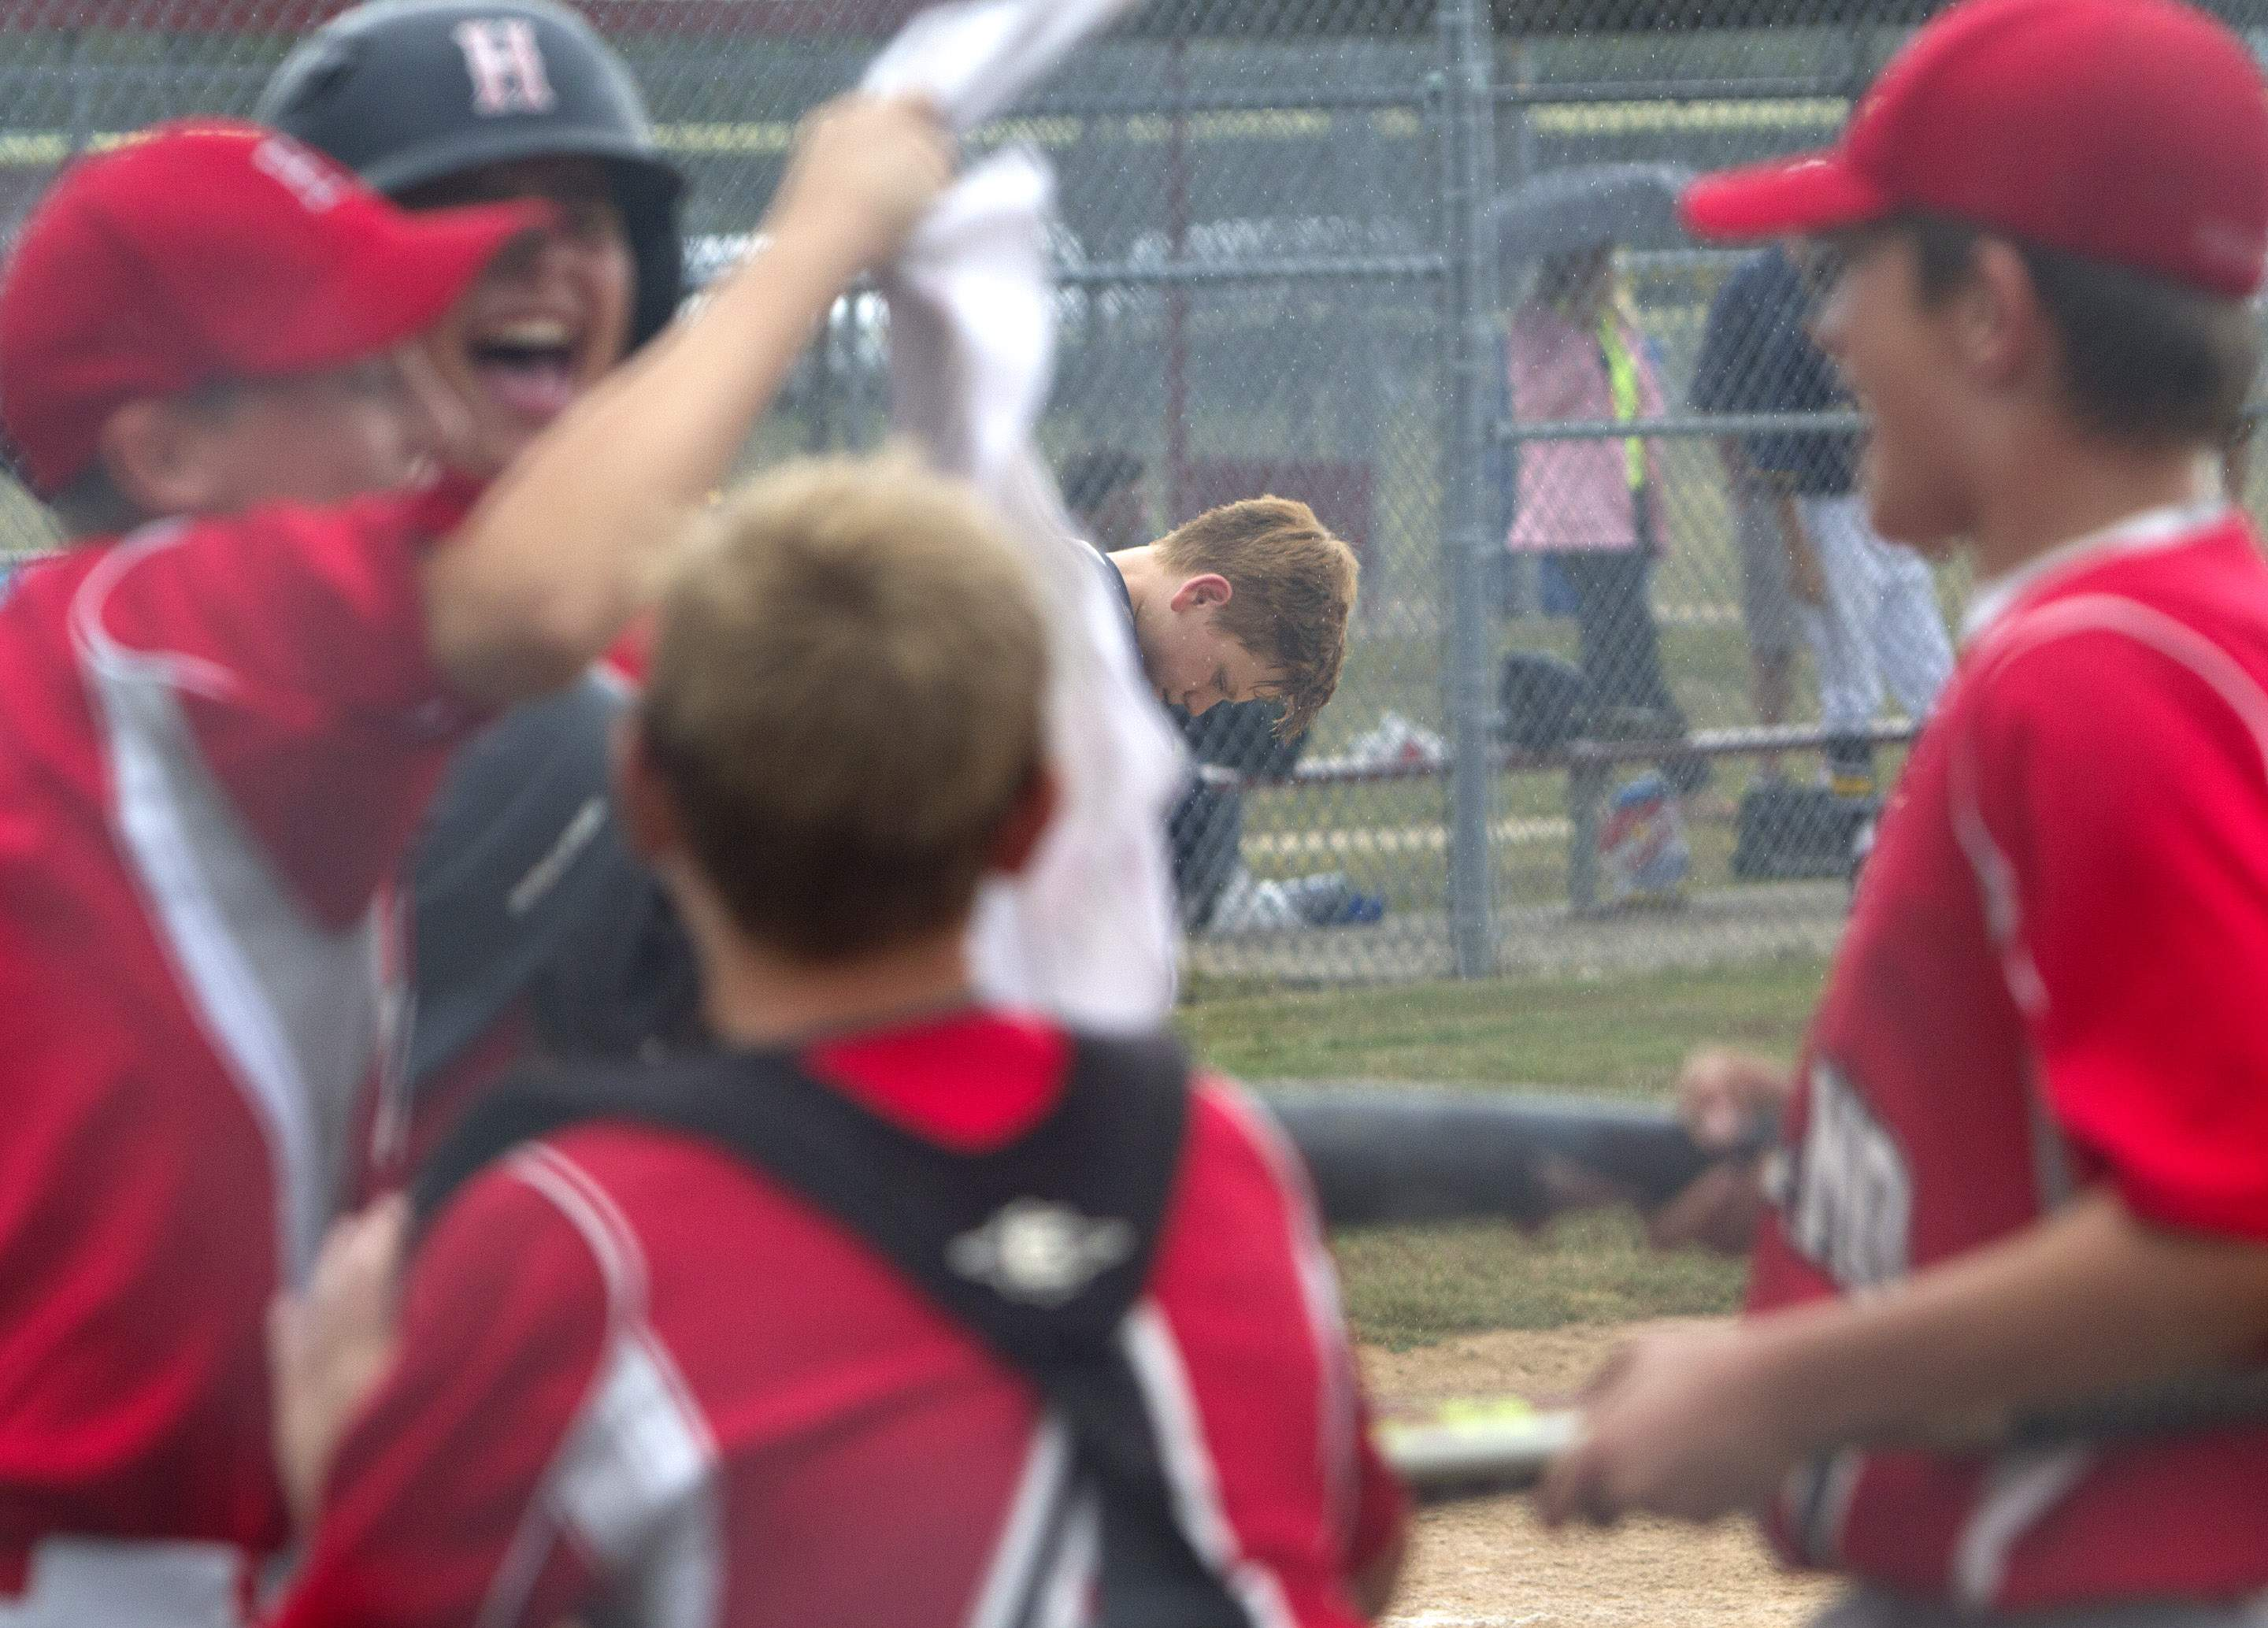 Marion catcher Lukas Shrum looks at home plate in the rain after Highland scored to take the lead Tuesday.